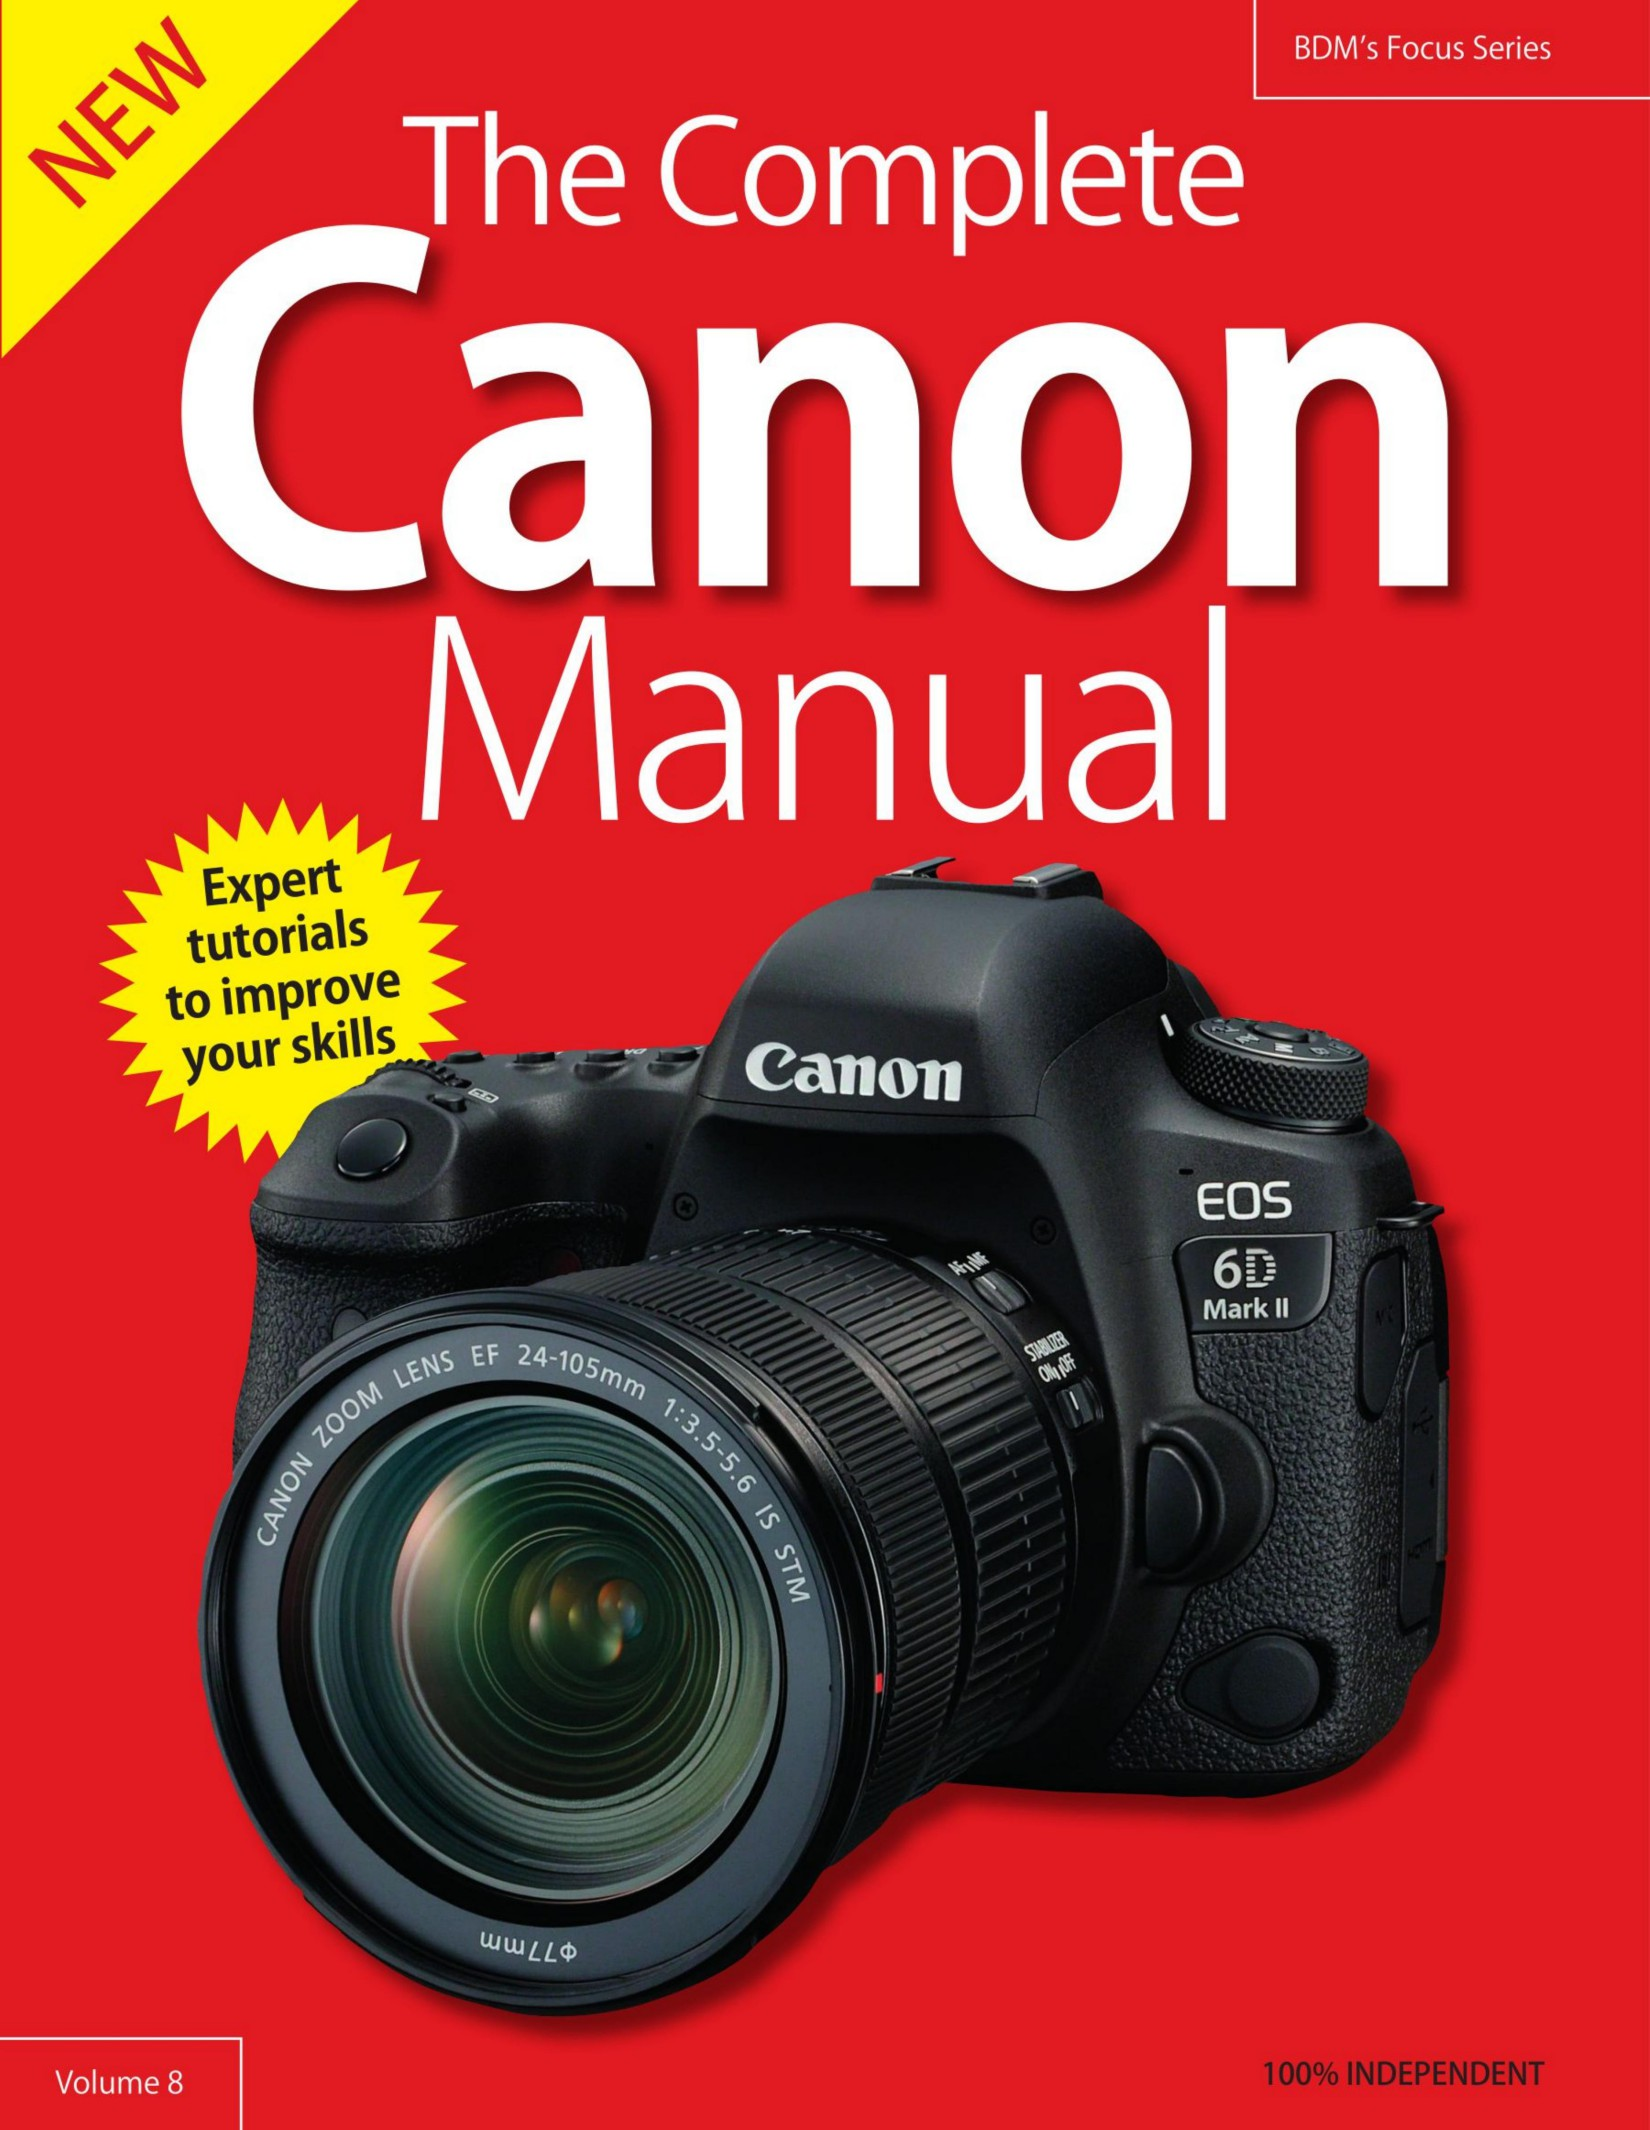 the complete canon manual volume 8 p2p releaselog rlslog net rh rlslog net Cannon EOS Canon EOS T3 Manual